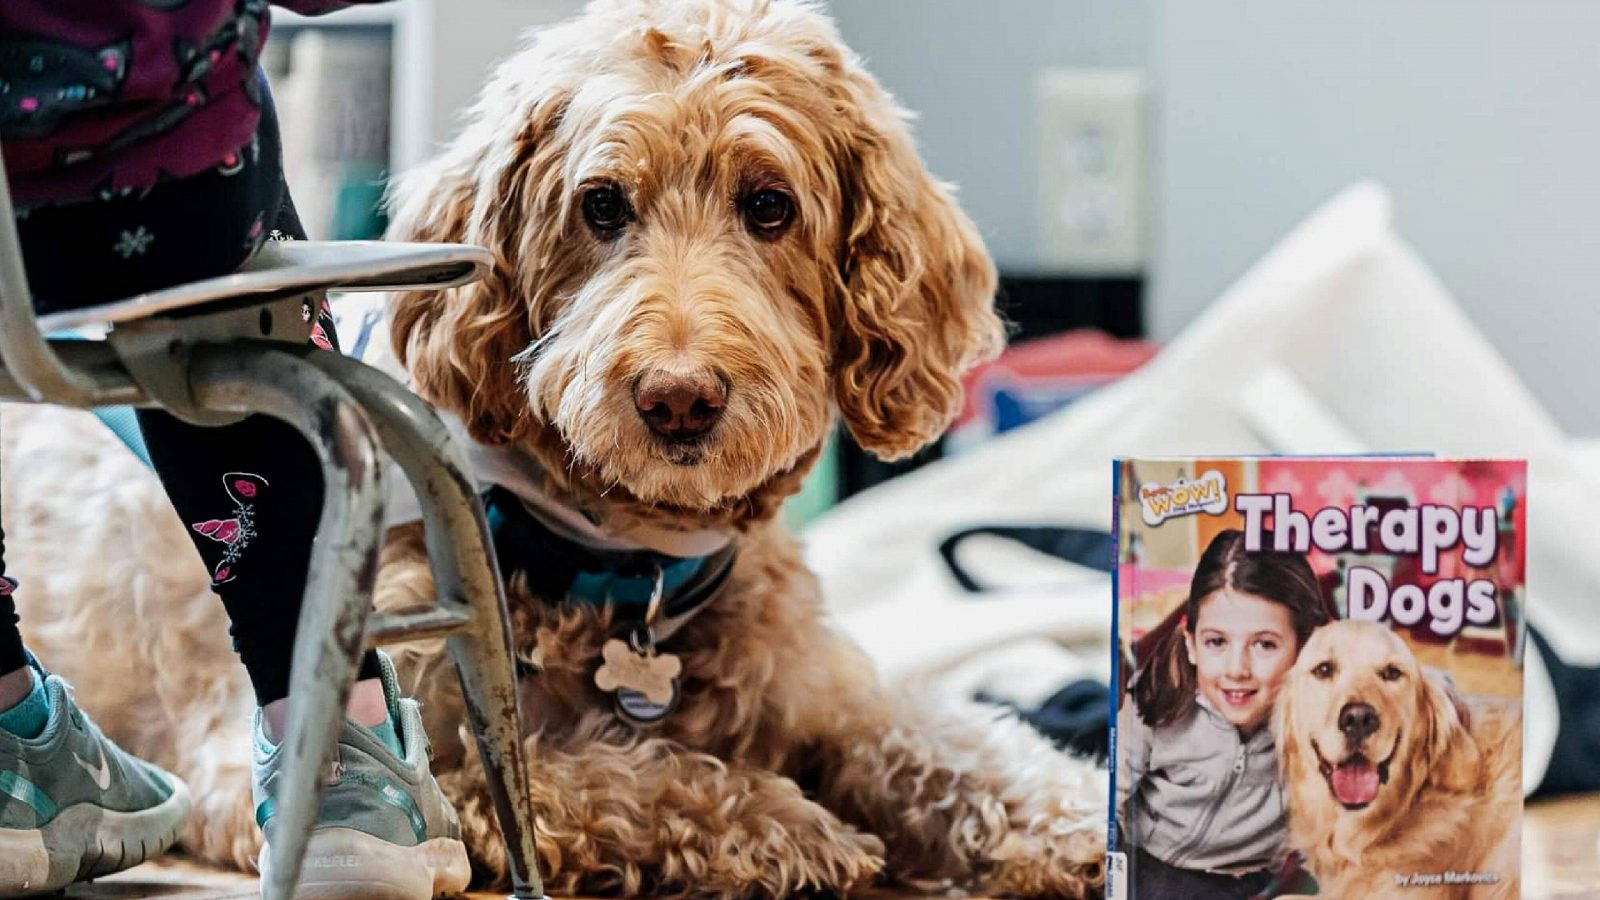 Therapy dog sitting next to a book about dog therapy